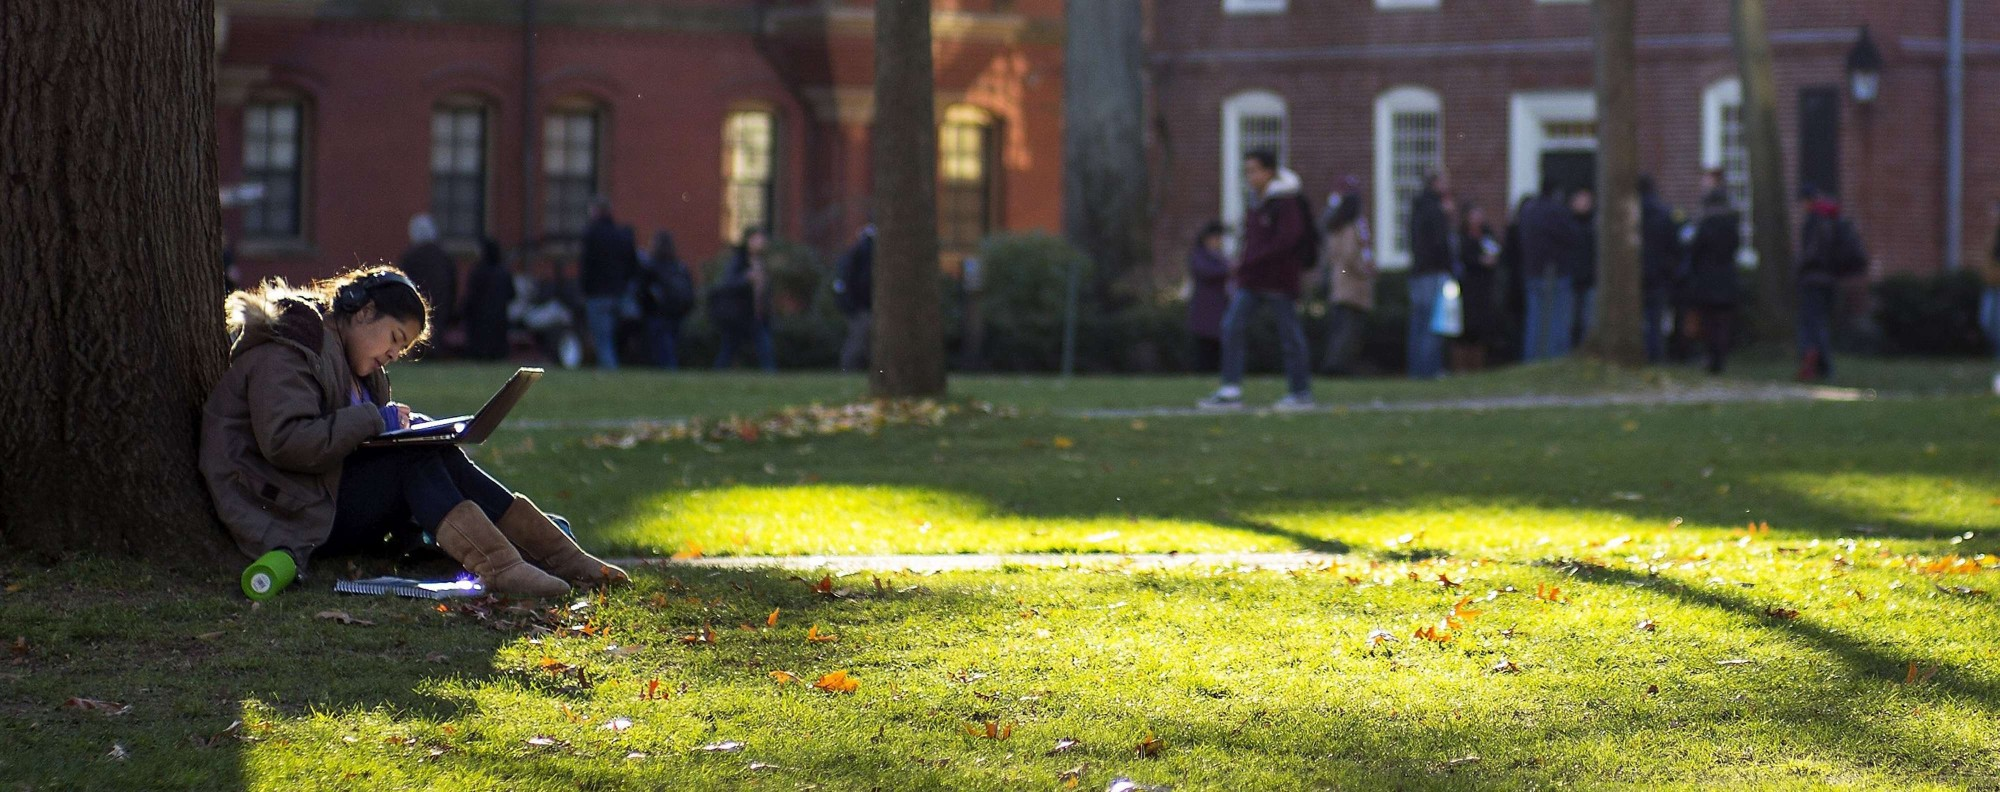 Harvard University Campus Photo EPA